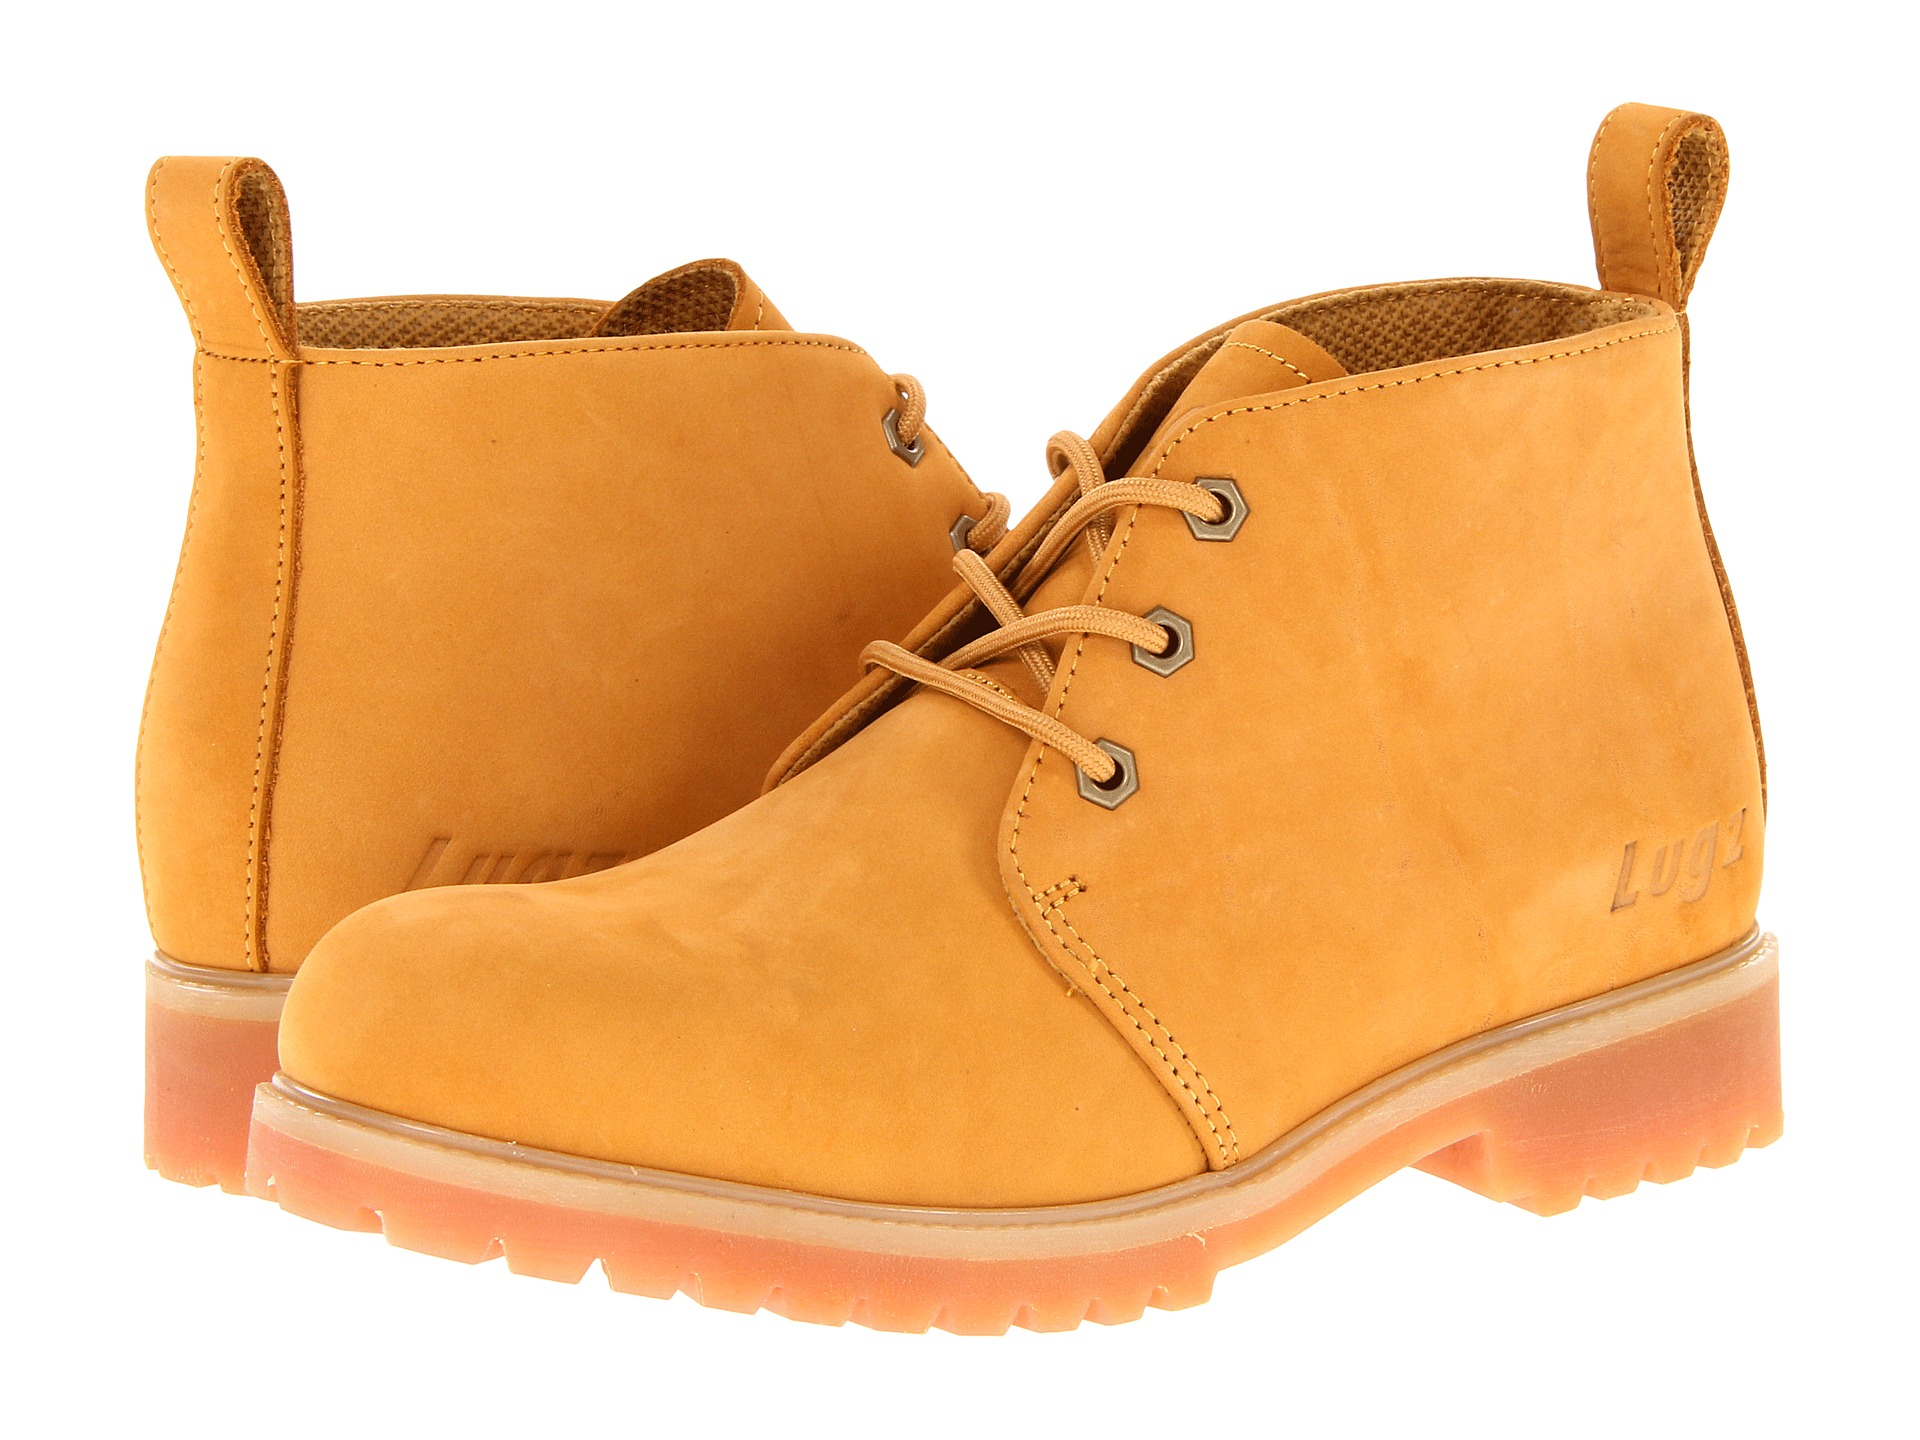 With Inexpensive Moc Toe Boots For Men Myideasbedroomcom Lugz Mens